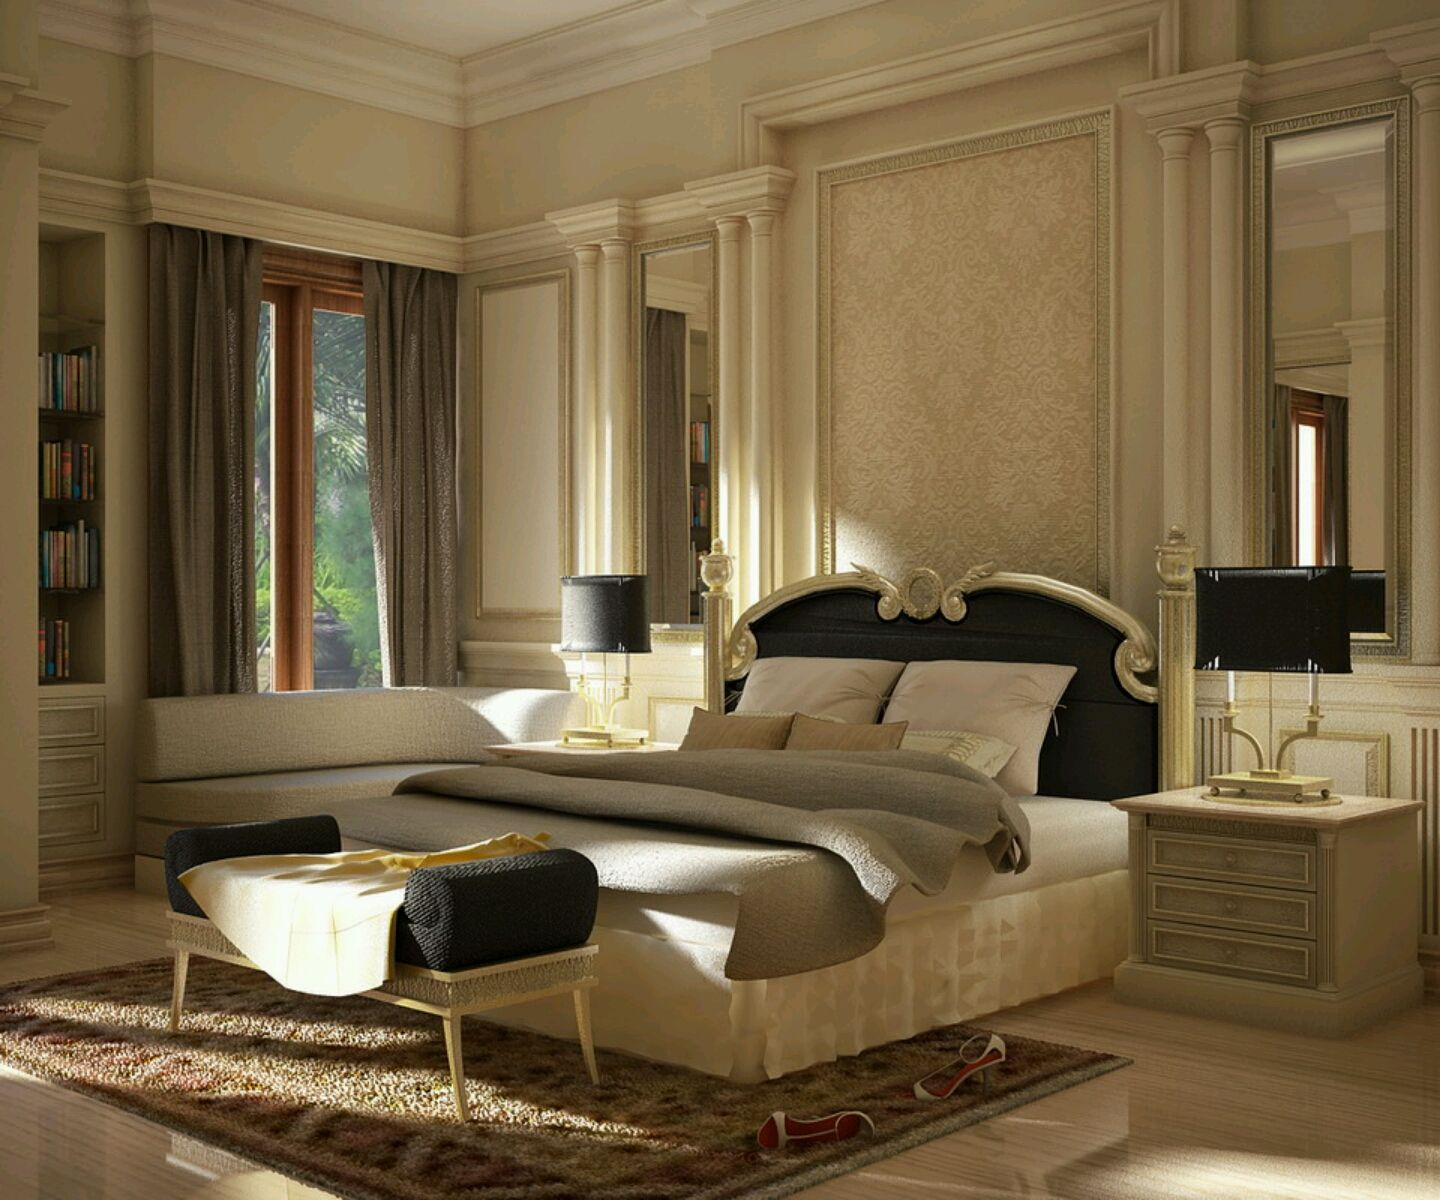 Luxurious Bedroom Design Beauteous Luxary Bedroom  Modern Luxury Bedroom Furniture Designs Ideas Design Ideas